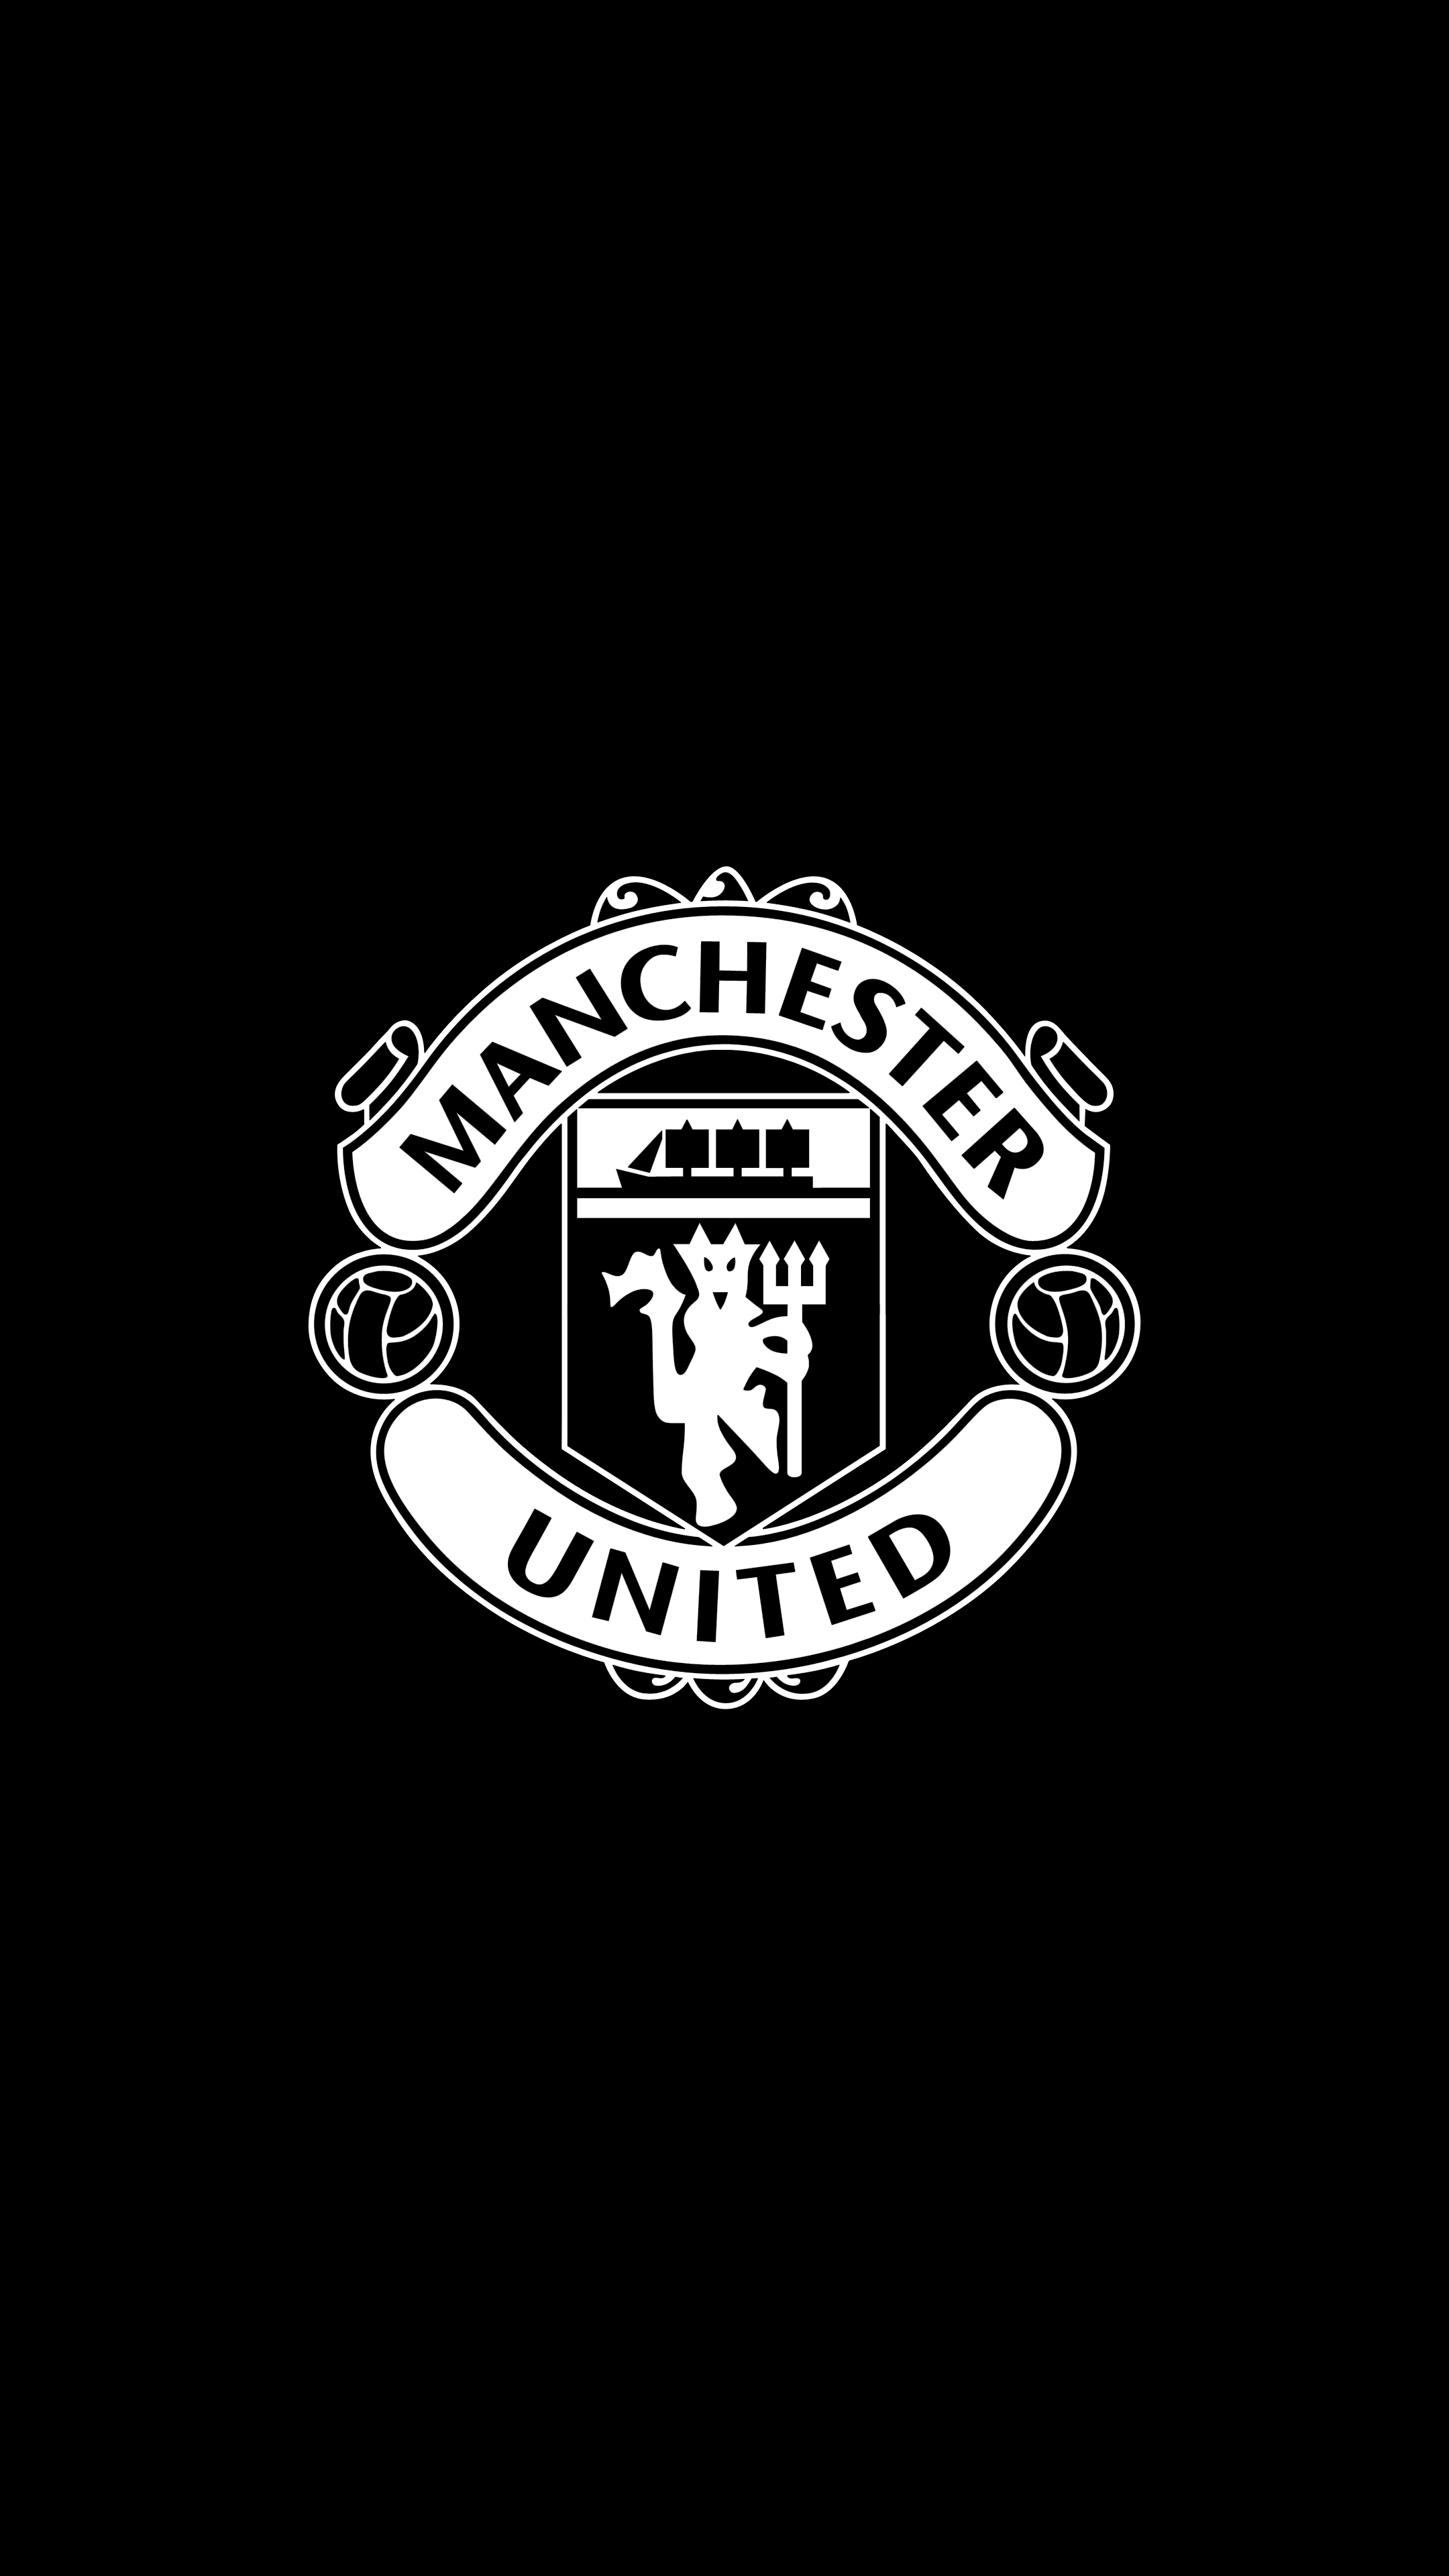 Manchester United 4k Quality Fixed Wallpaper Reupload Sepak Bola Wallpaper Ponsel